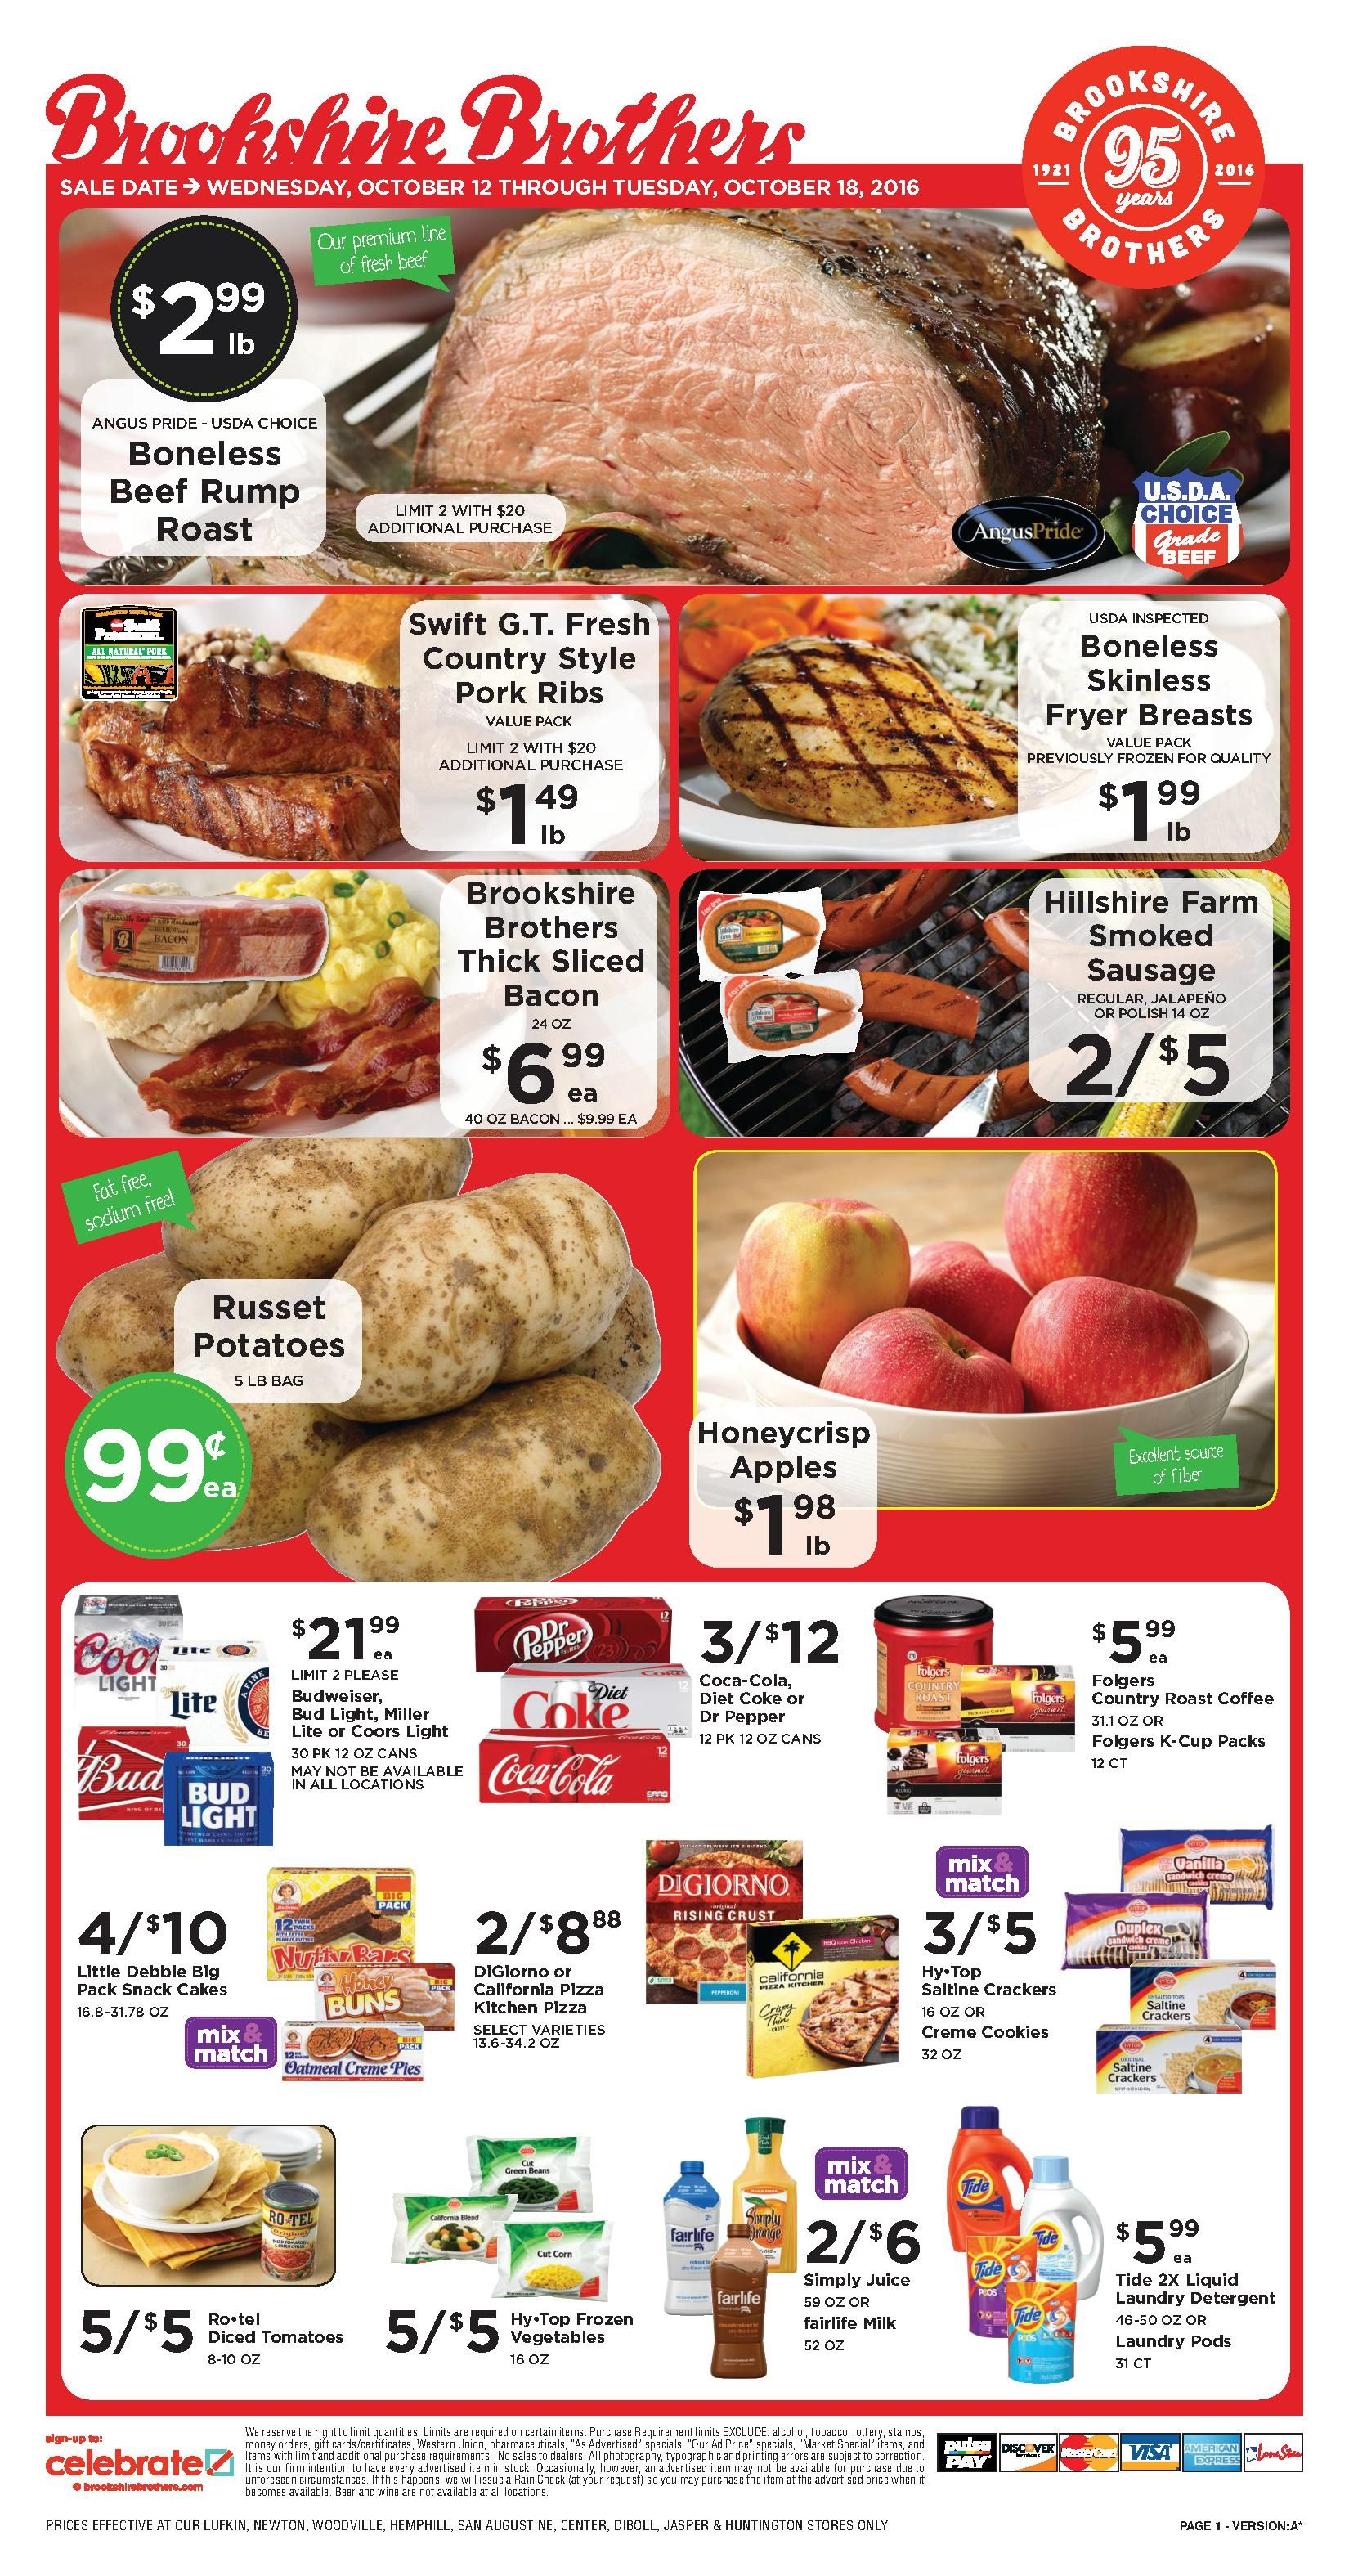 Brookshire Brothers Ad Specials http//www.myweeklyads